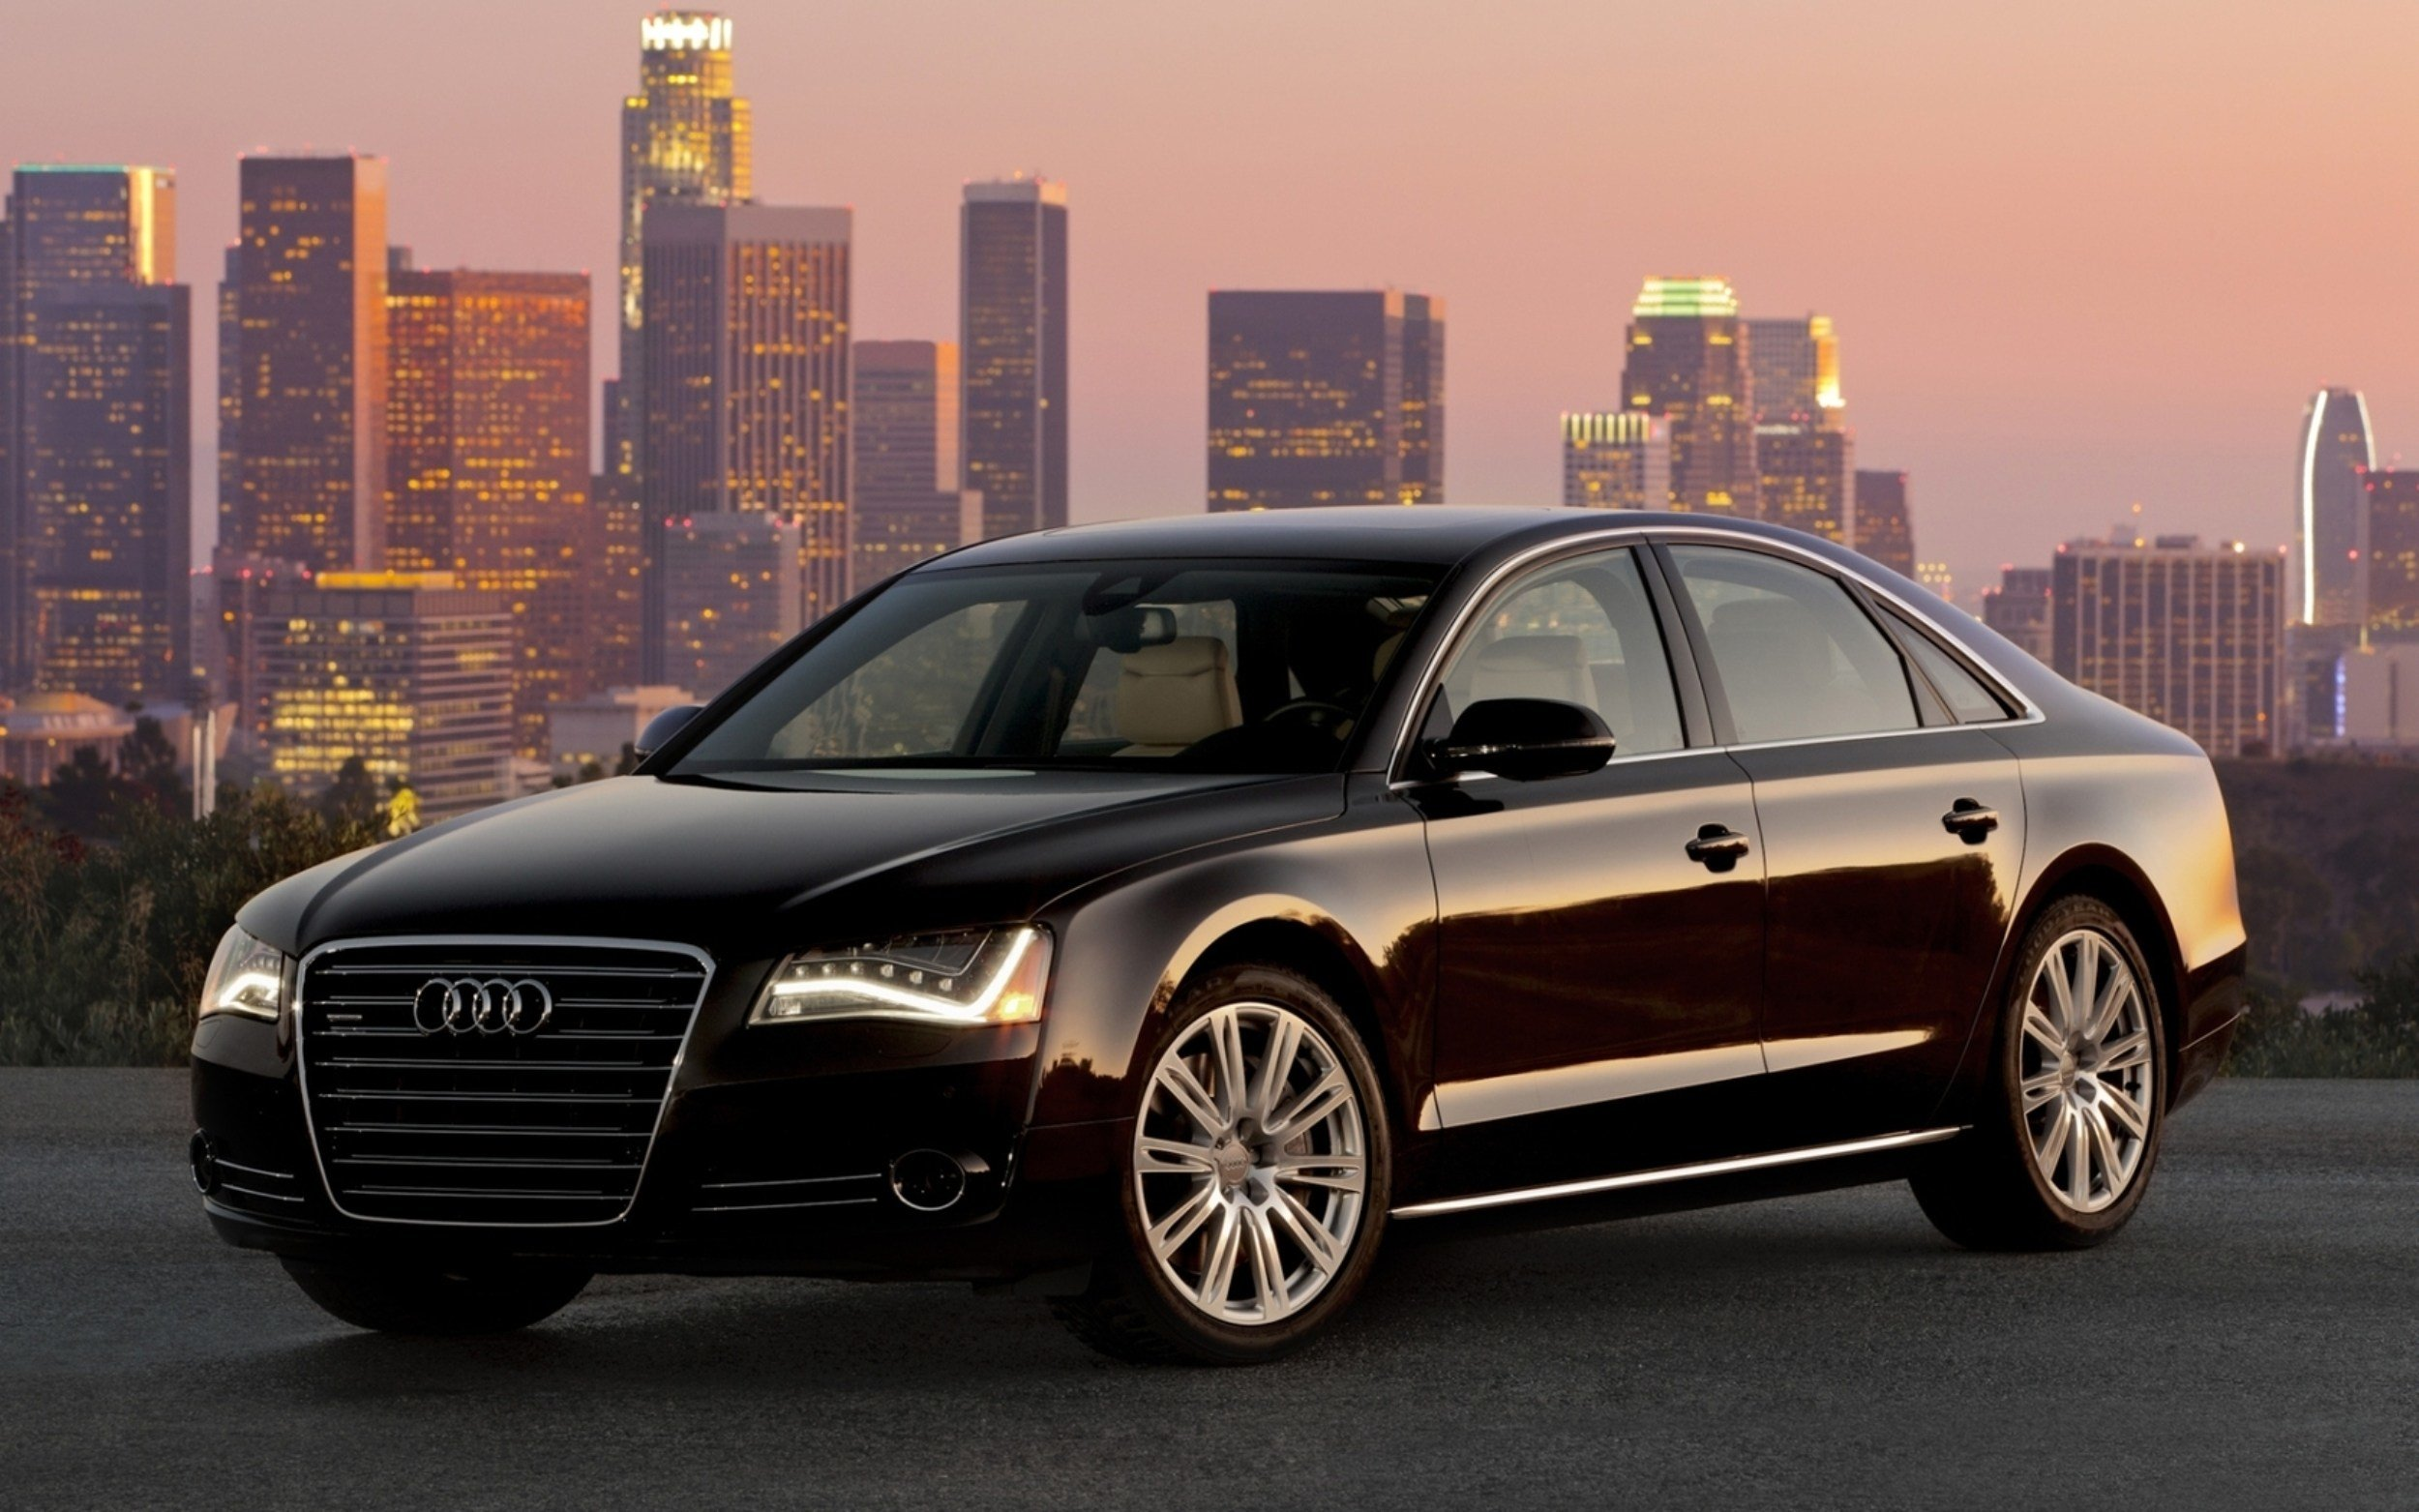 Latest Audi A8 Black Car Wallpapers 2500X1563 1755615 Free Download